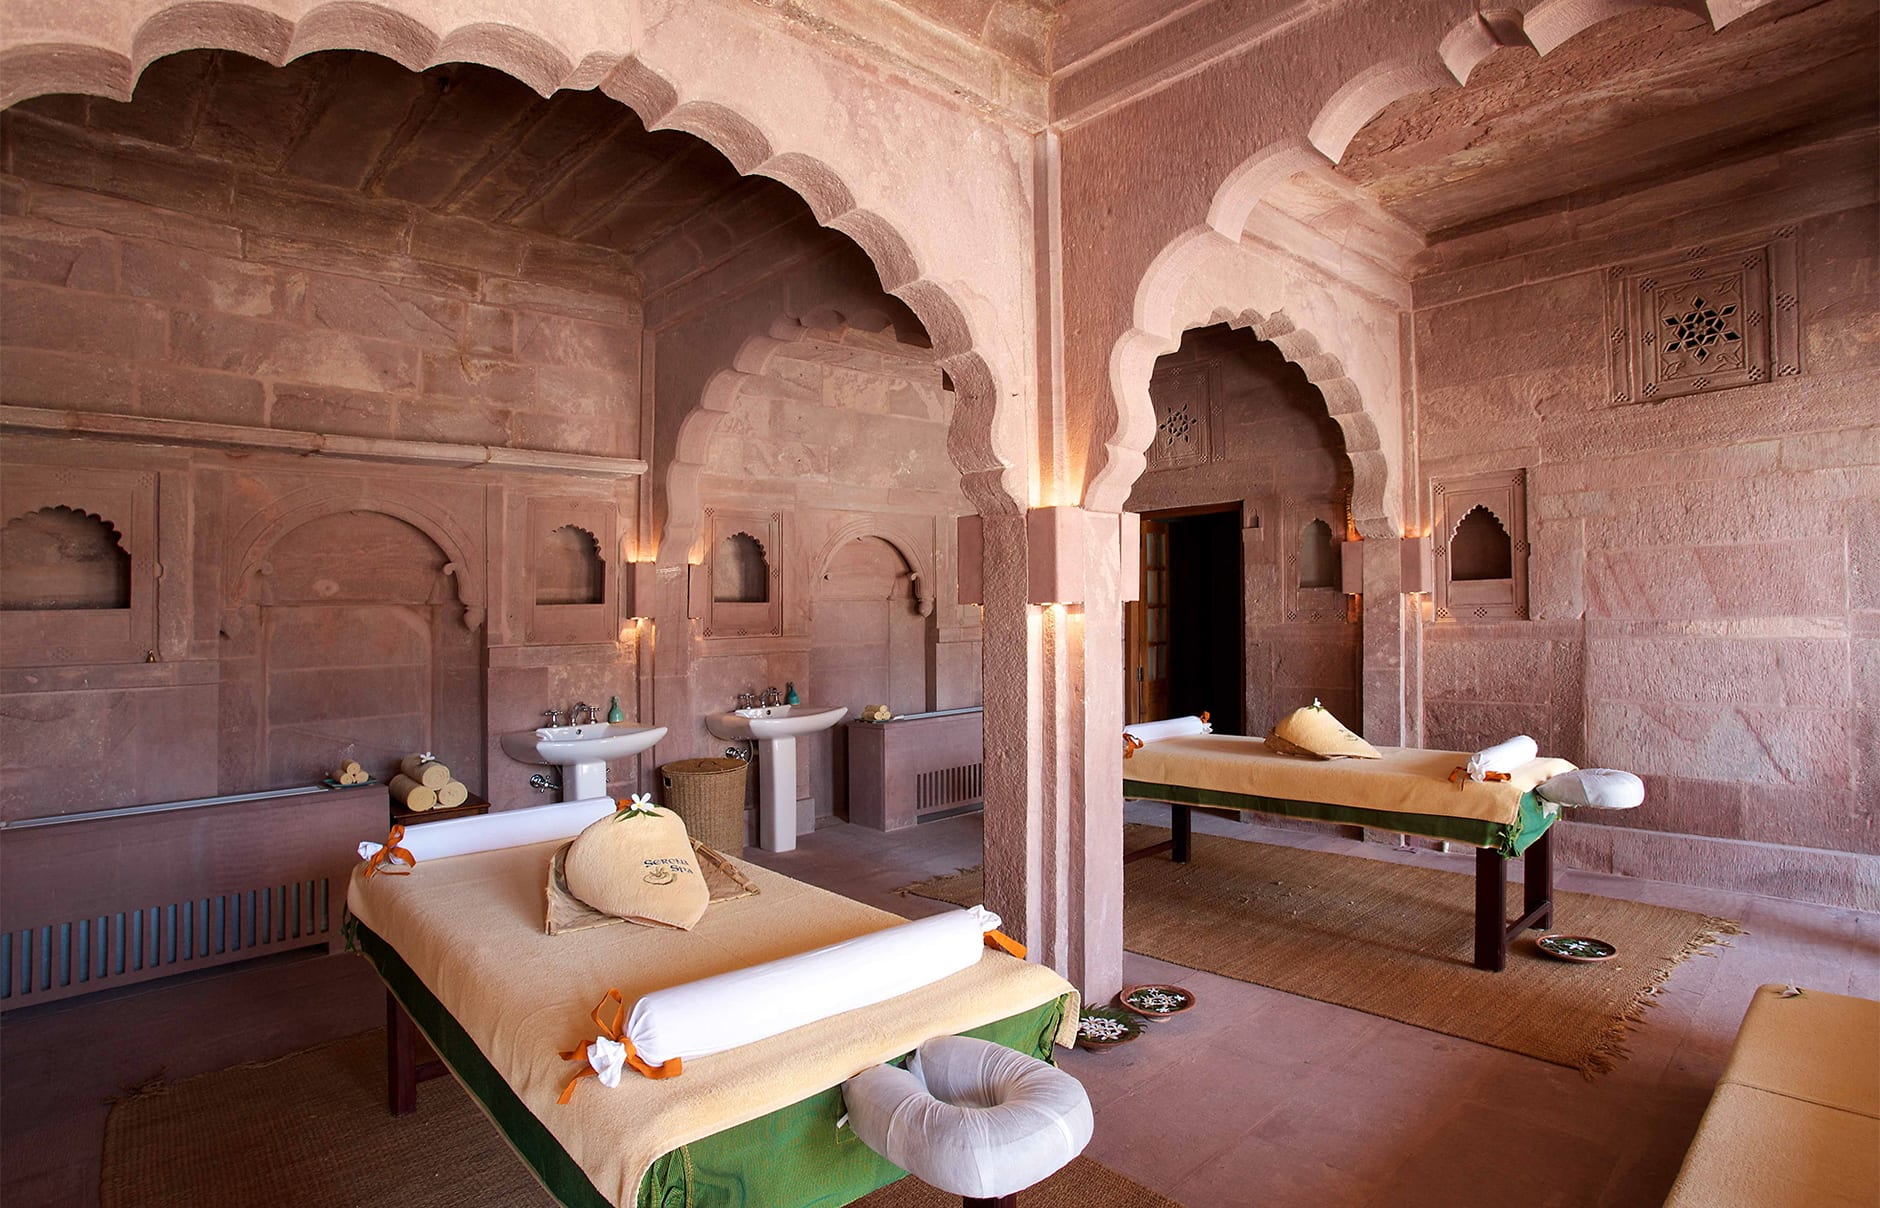 Spa treatment room. Raas Jodhpur, India. Luxury Hotel Review by TravelPlusStyle. Photo © Rass